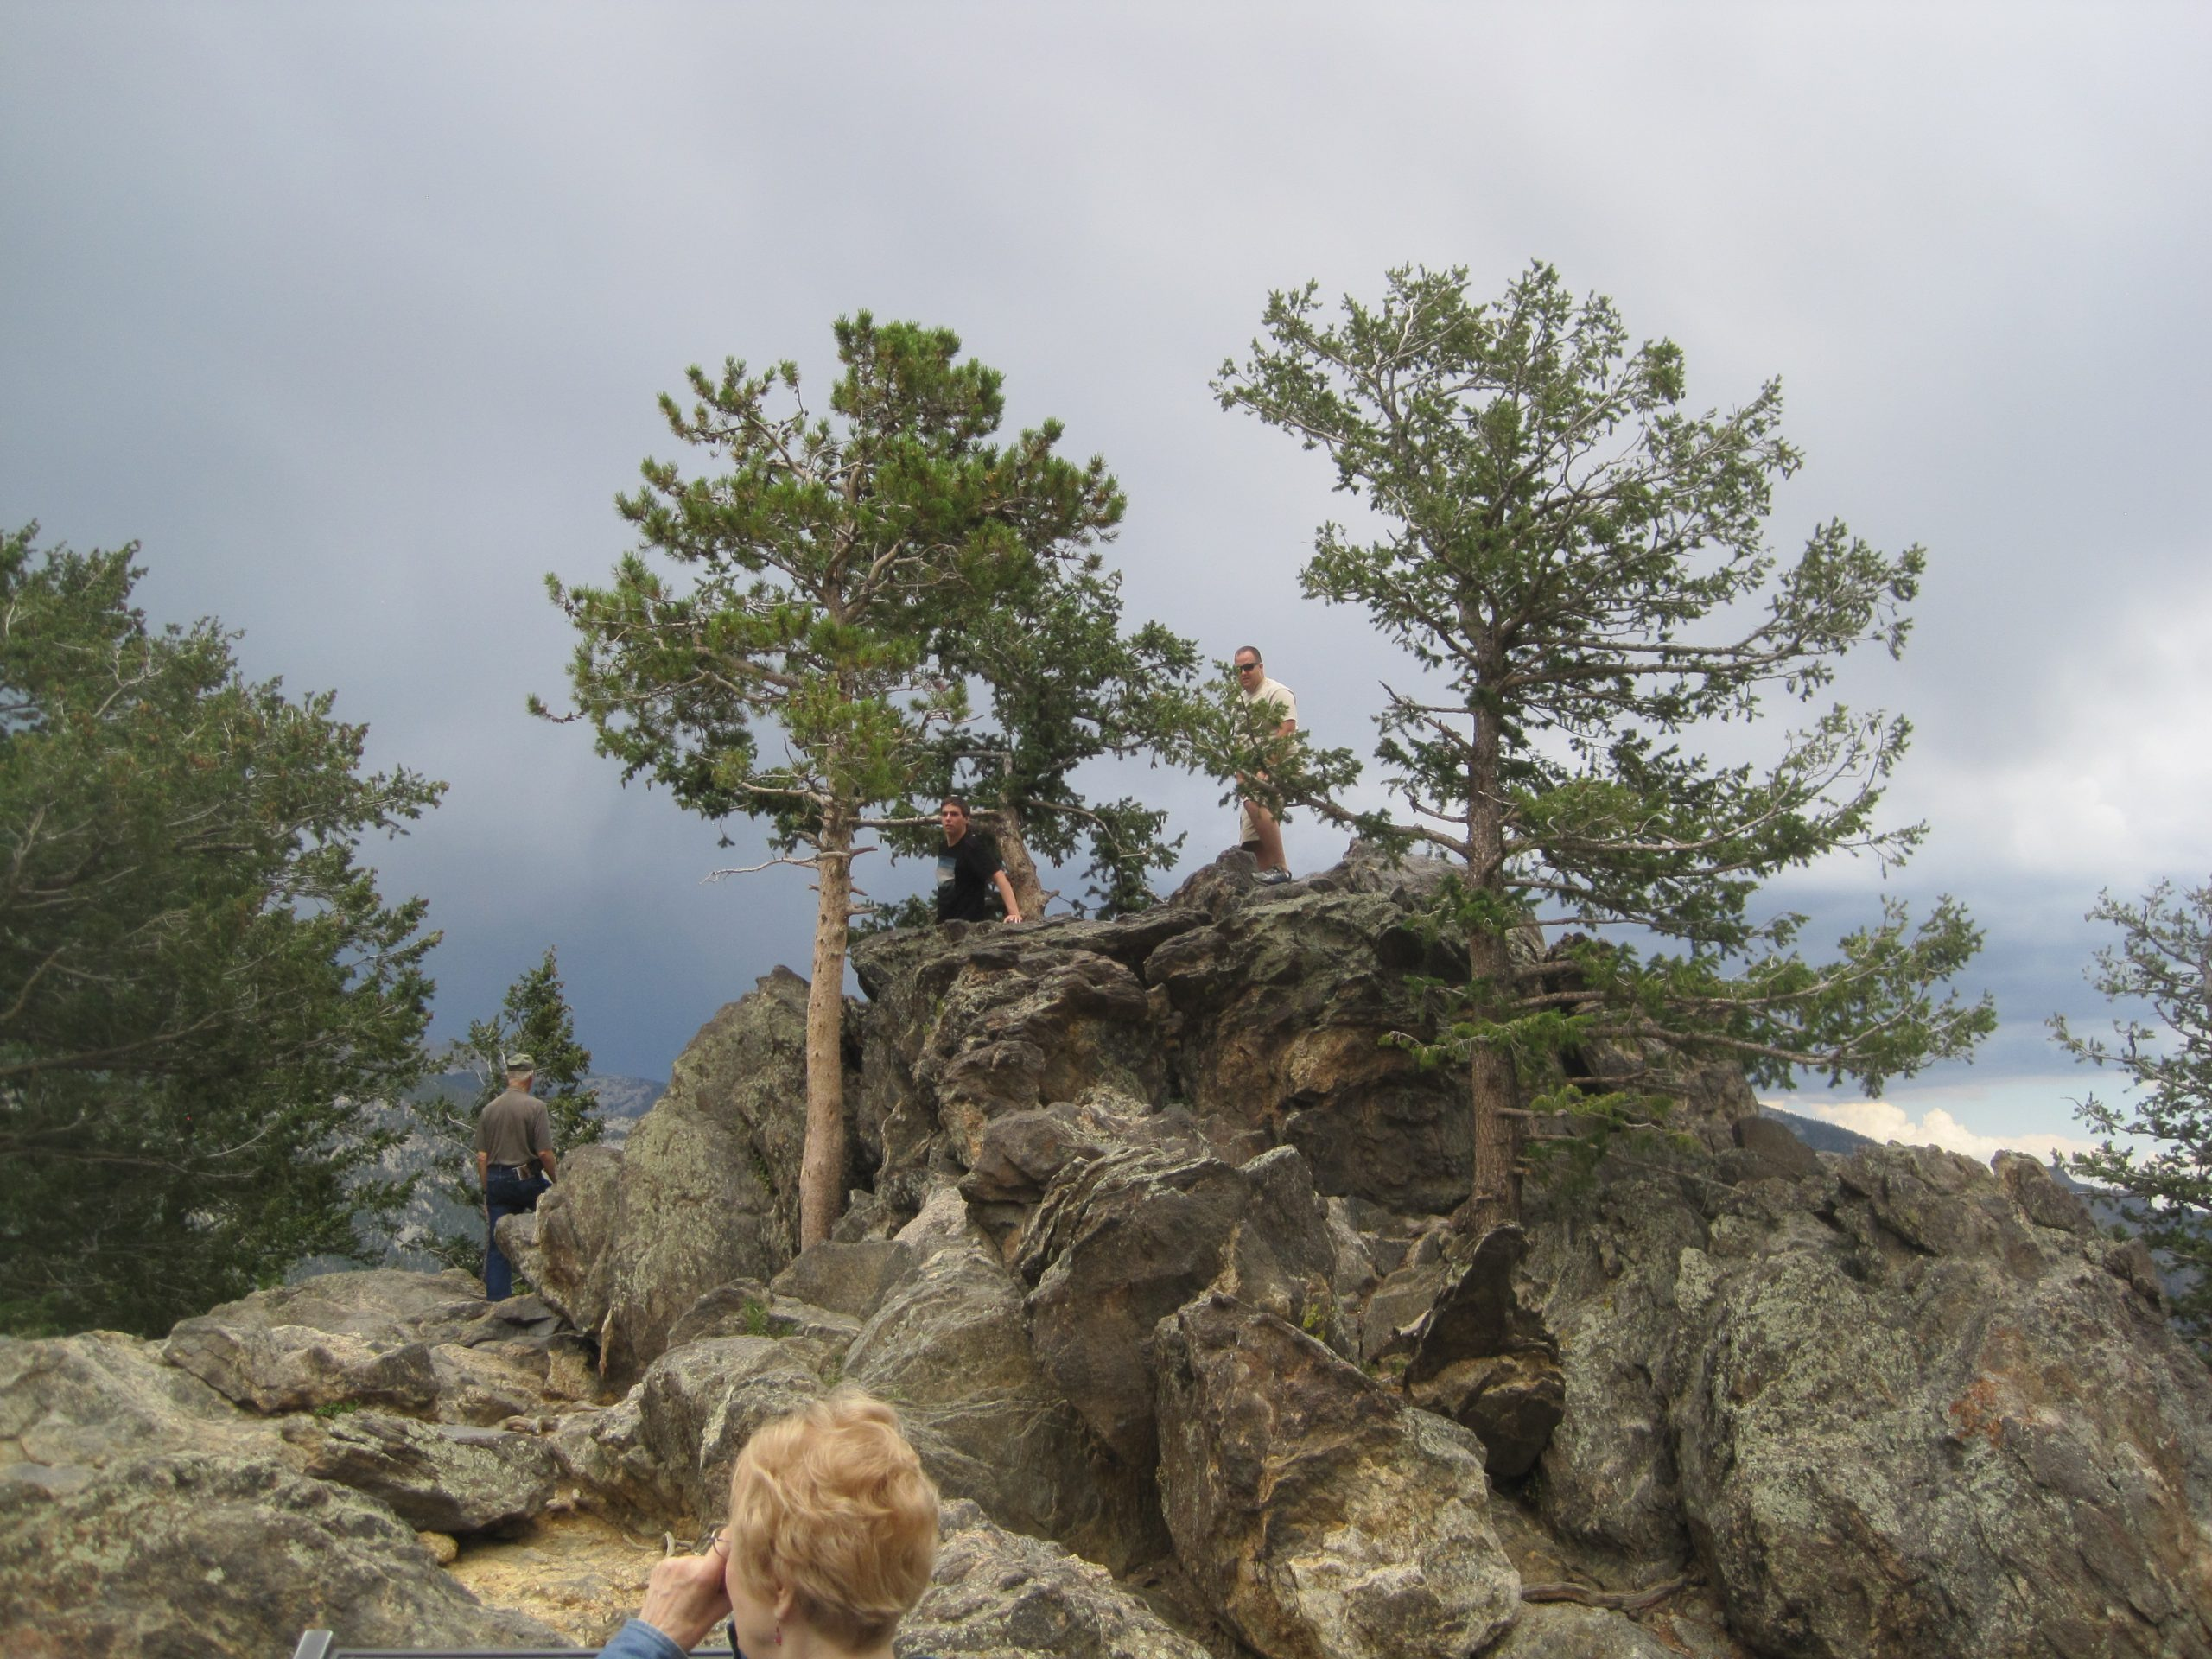 Being a responsible hiker